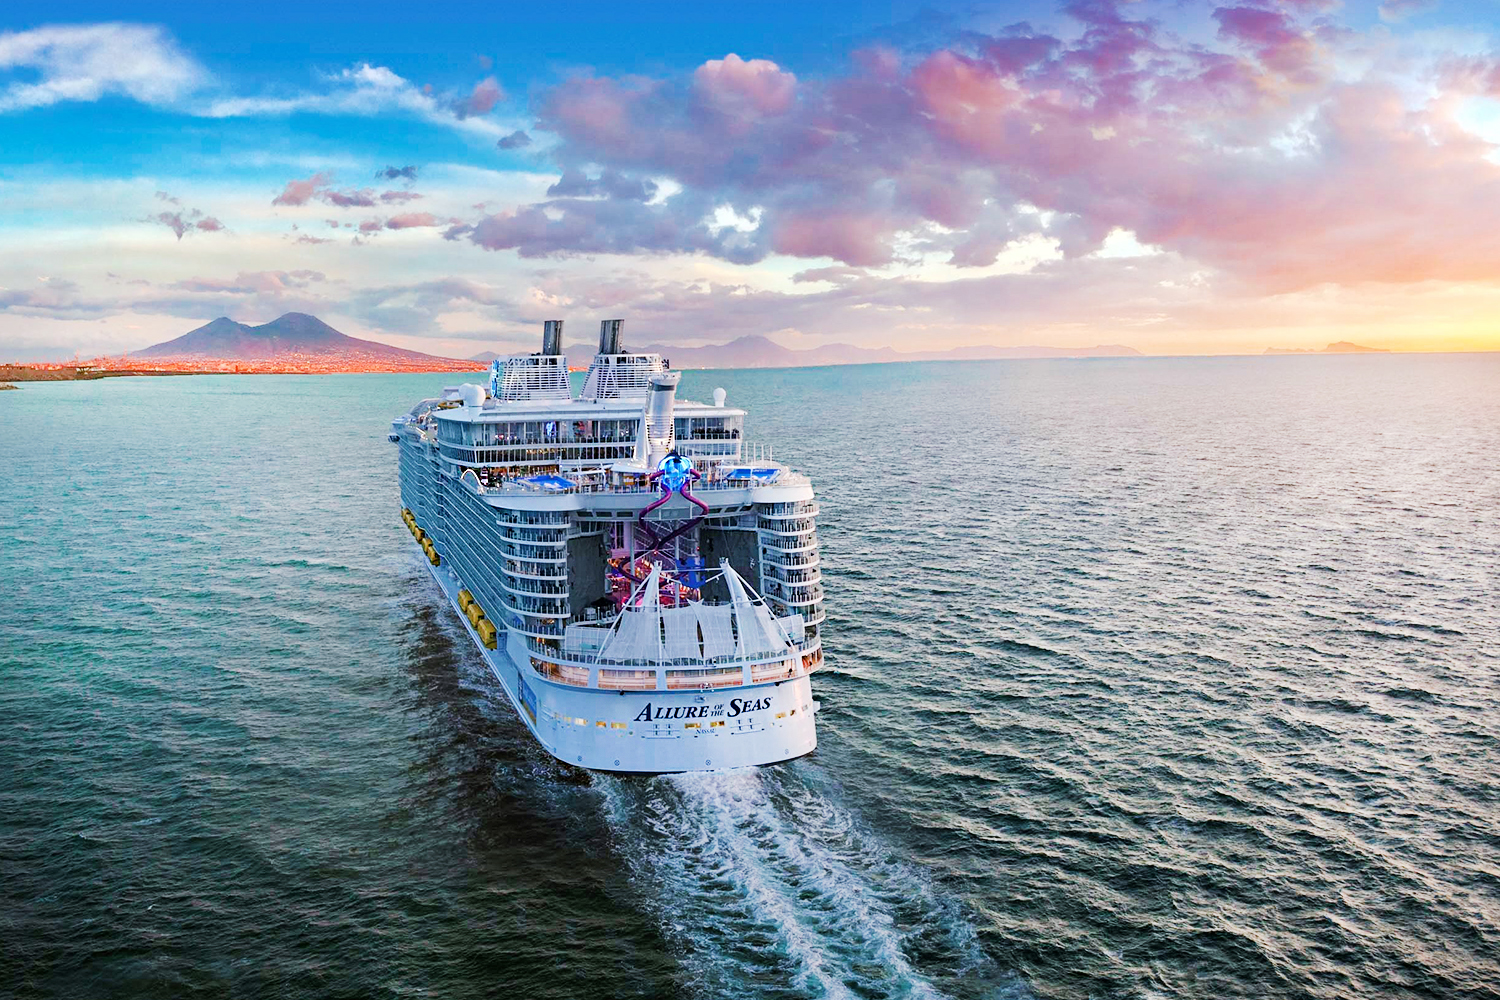 Тур с круизом на Allure Of The Seas 5*: Барселона, Пальма-де-Майорка, Марсель, Рим, Неаполь - Туристический оператор APL Travel (АПЛ Тревел)